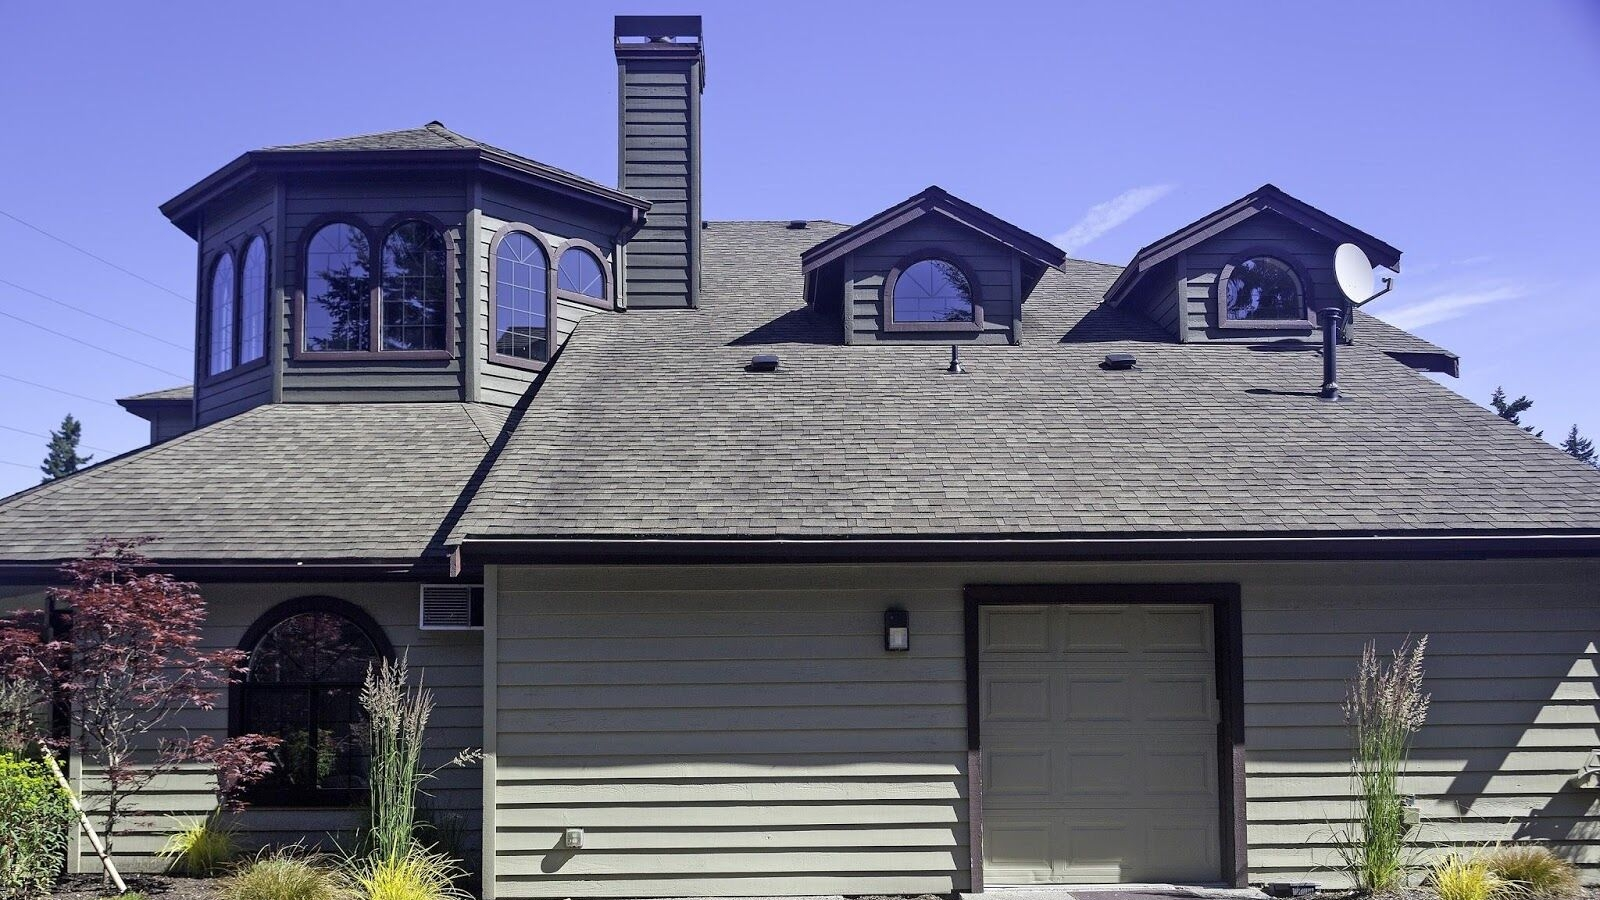 CrownPointeApartments5.jpeg